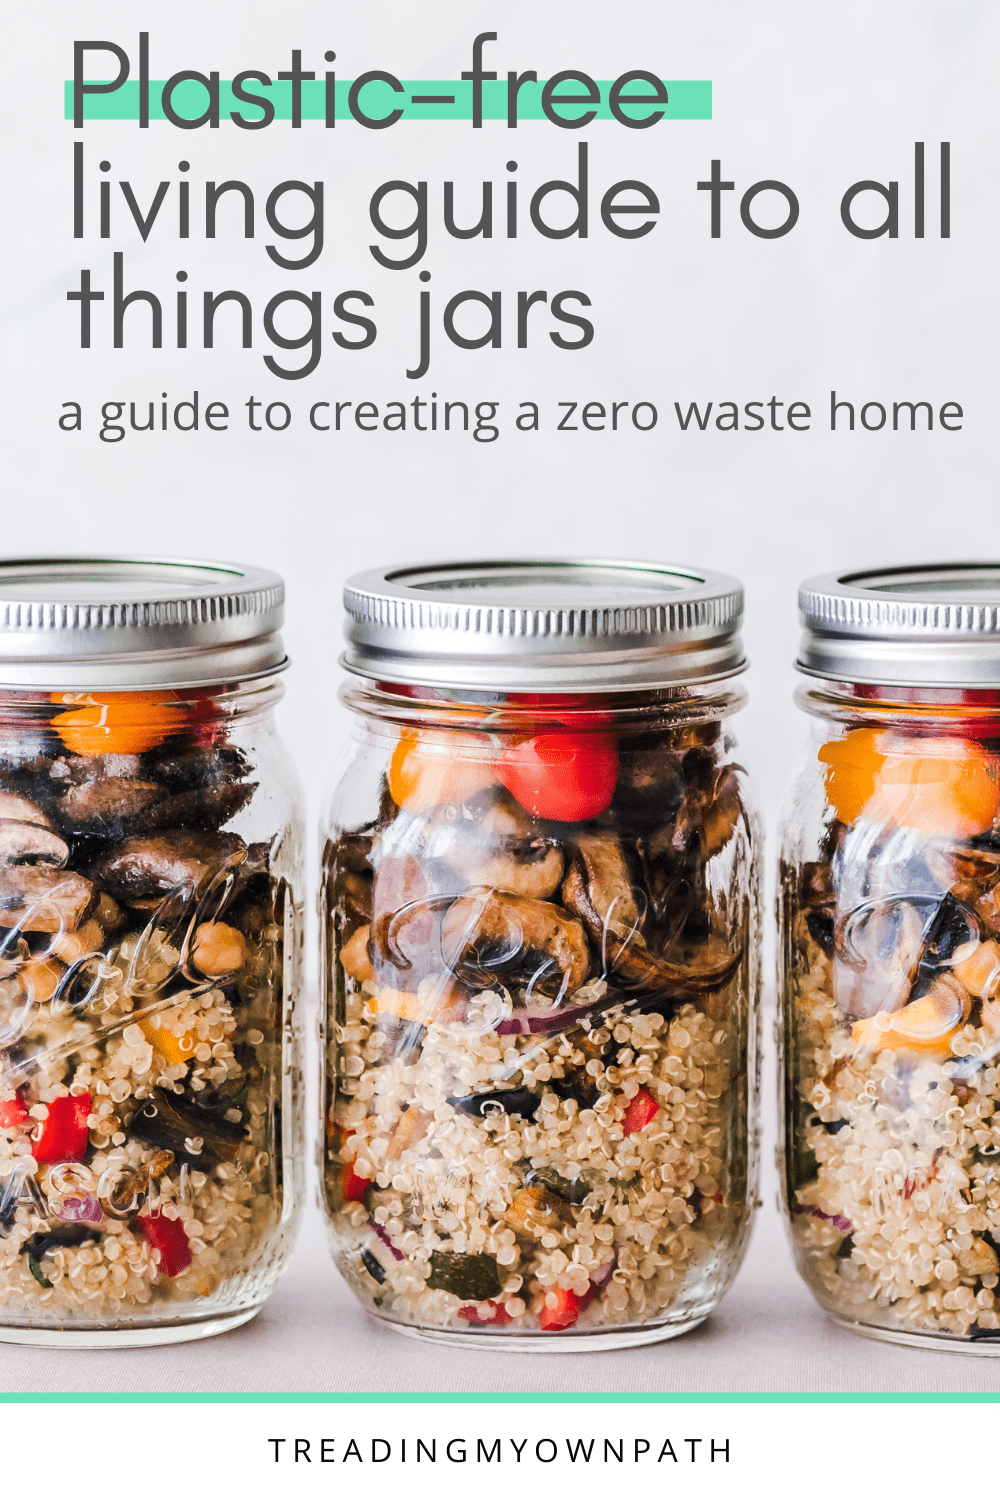 A Zero Waste, Plastic-Free Living Guide to All Things Jars